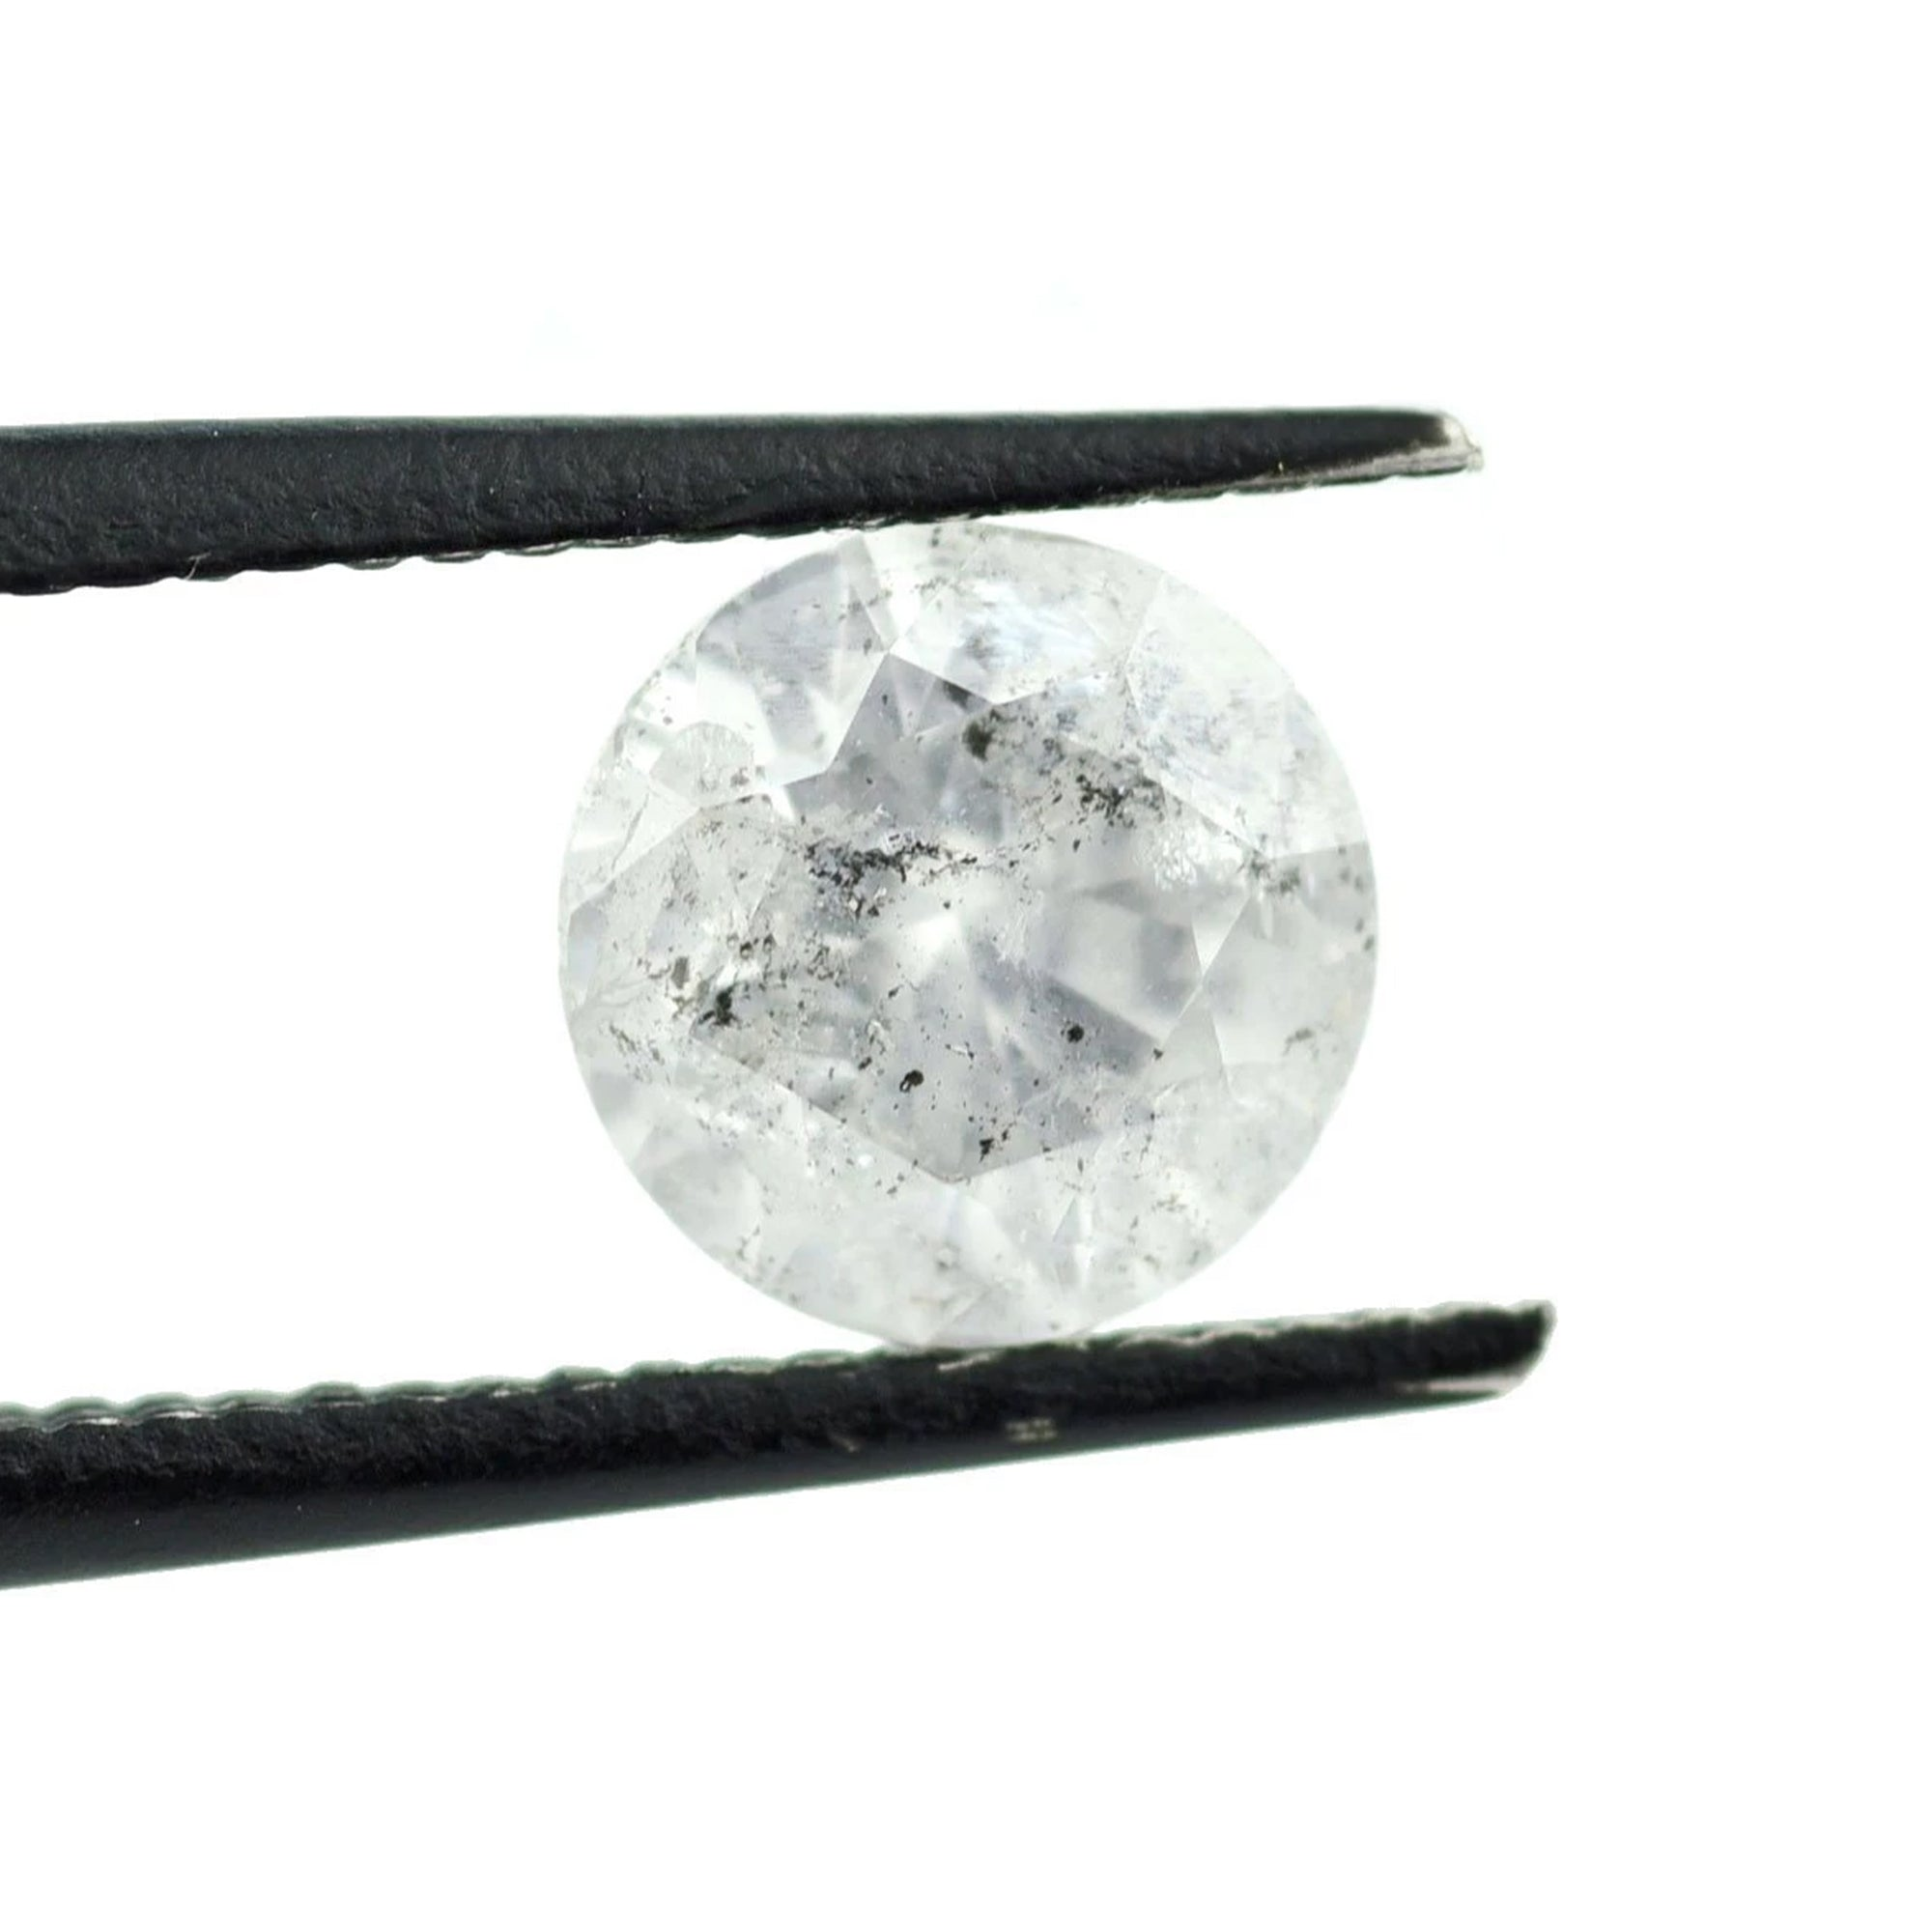 1.65ct White Gray Brilliant Cut Round Diamond, 7.6mm